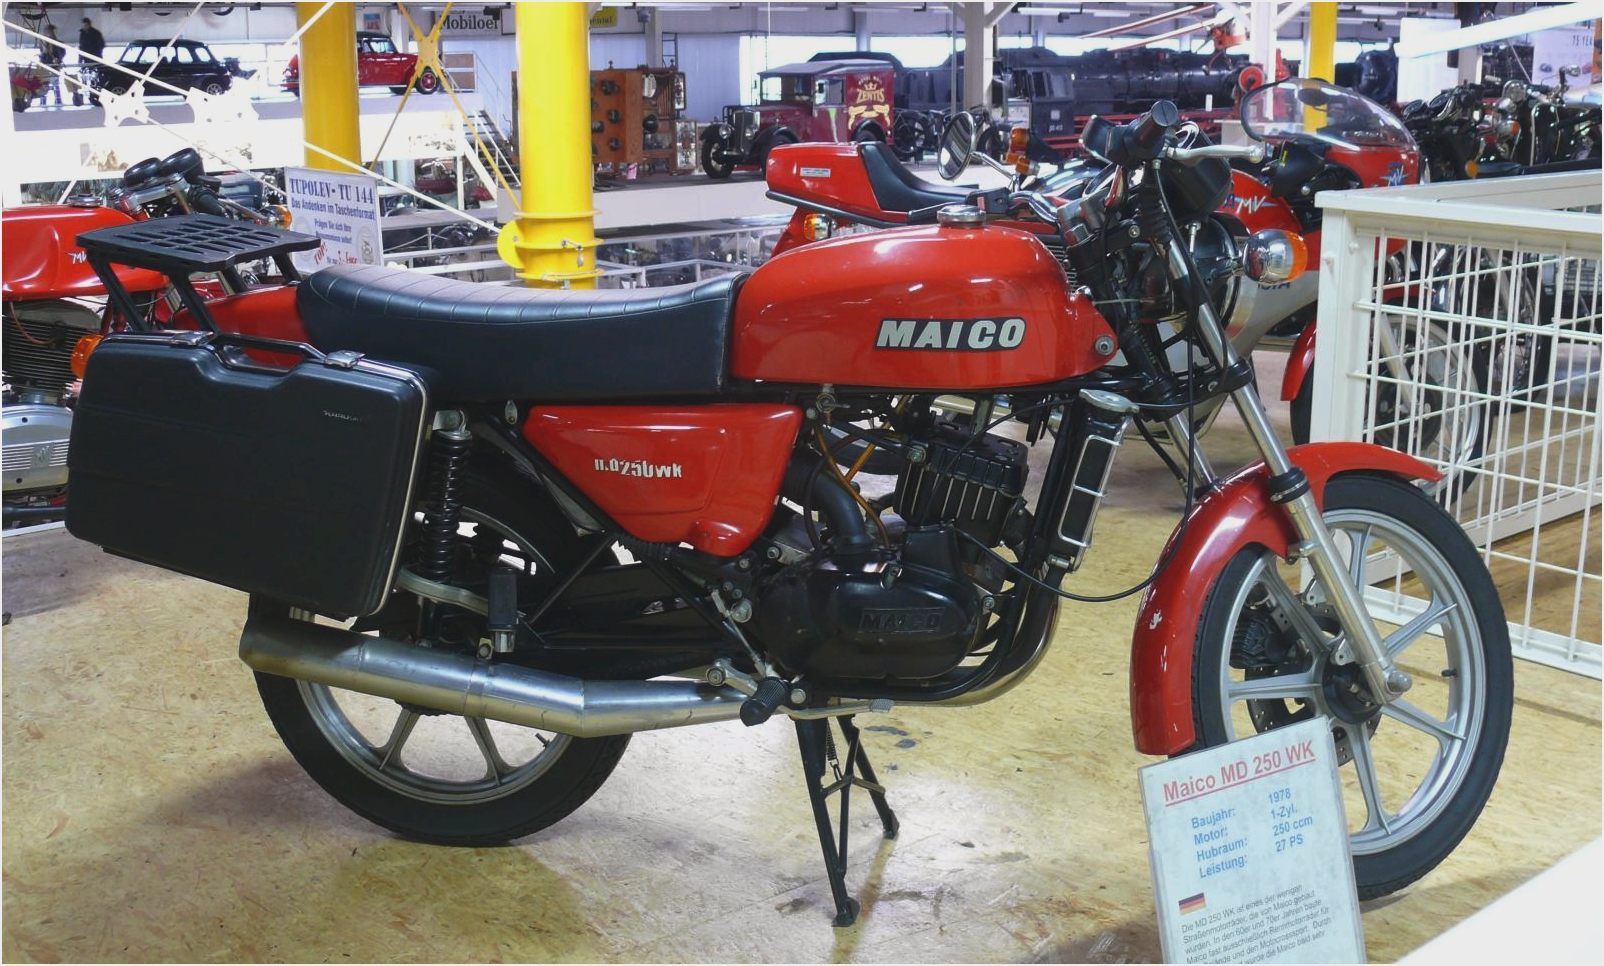 Maico MD 250 WK 1979 images #103560